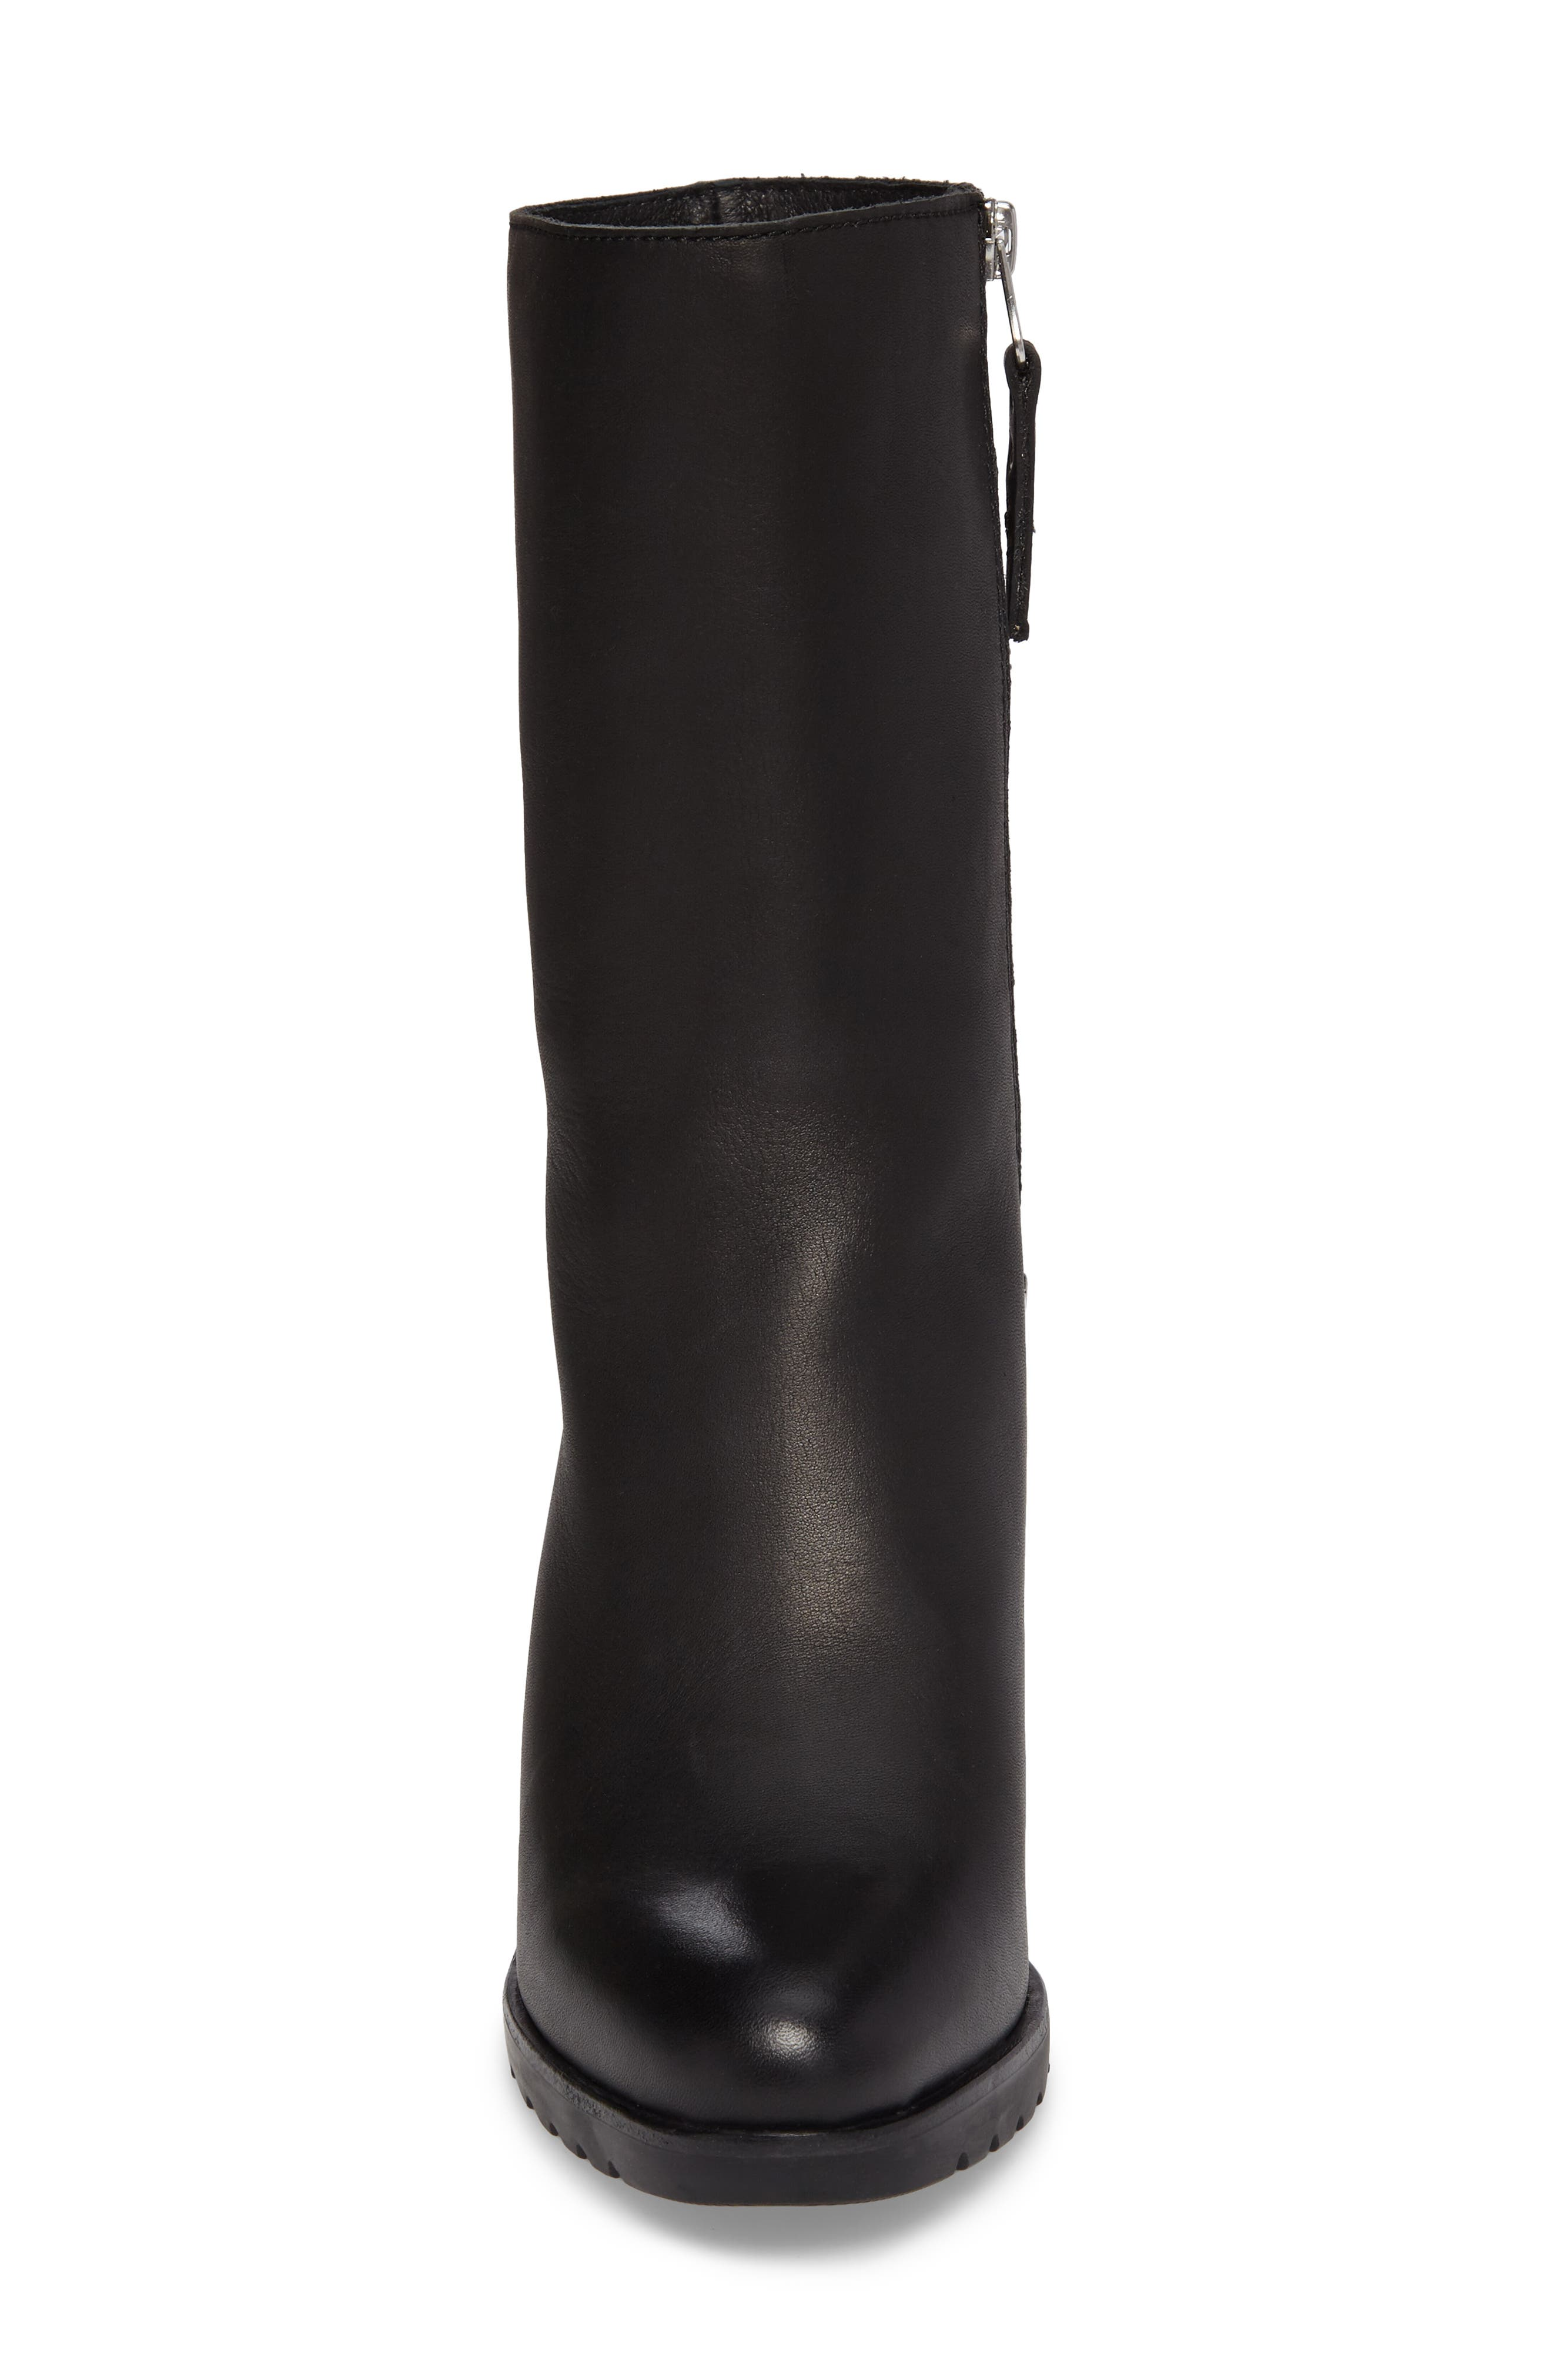 After Hours Waterproof Bootie,                             Alternate thumbnail 4, color,                             Black